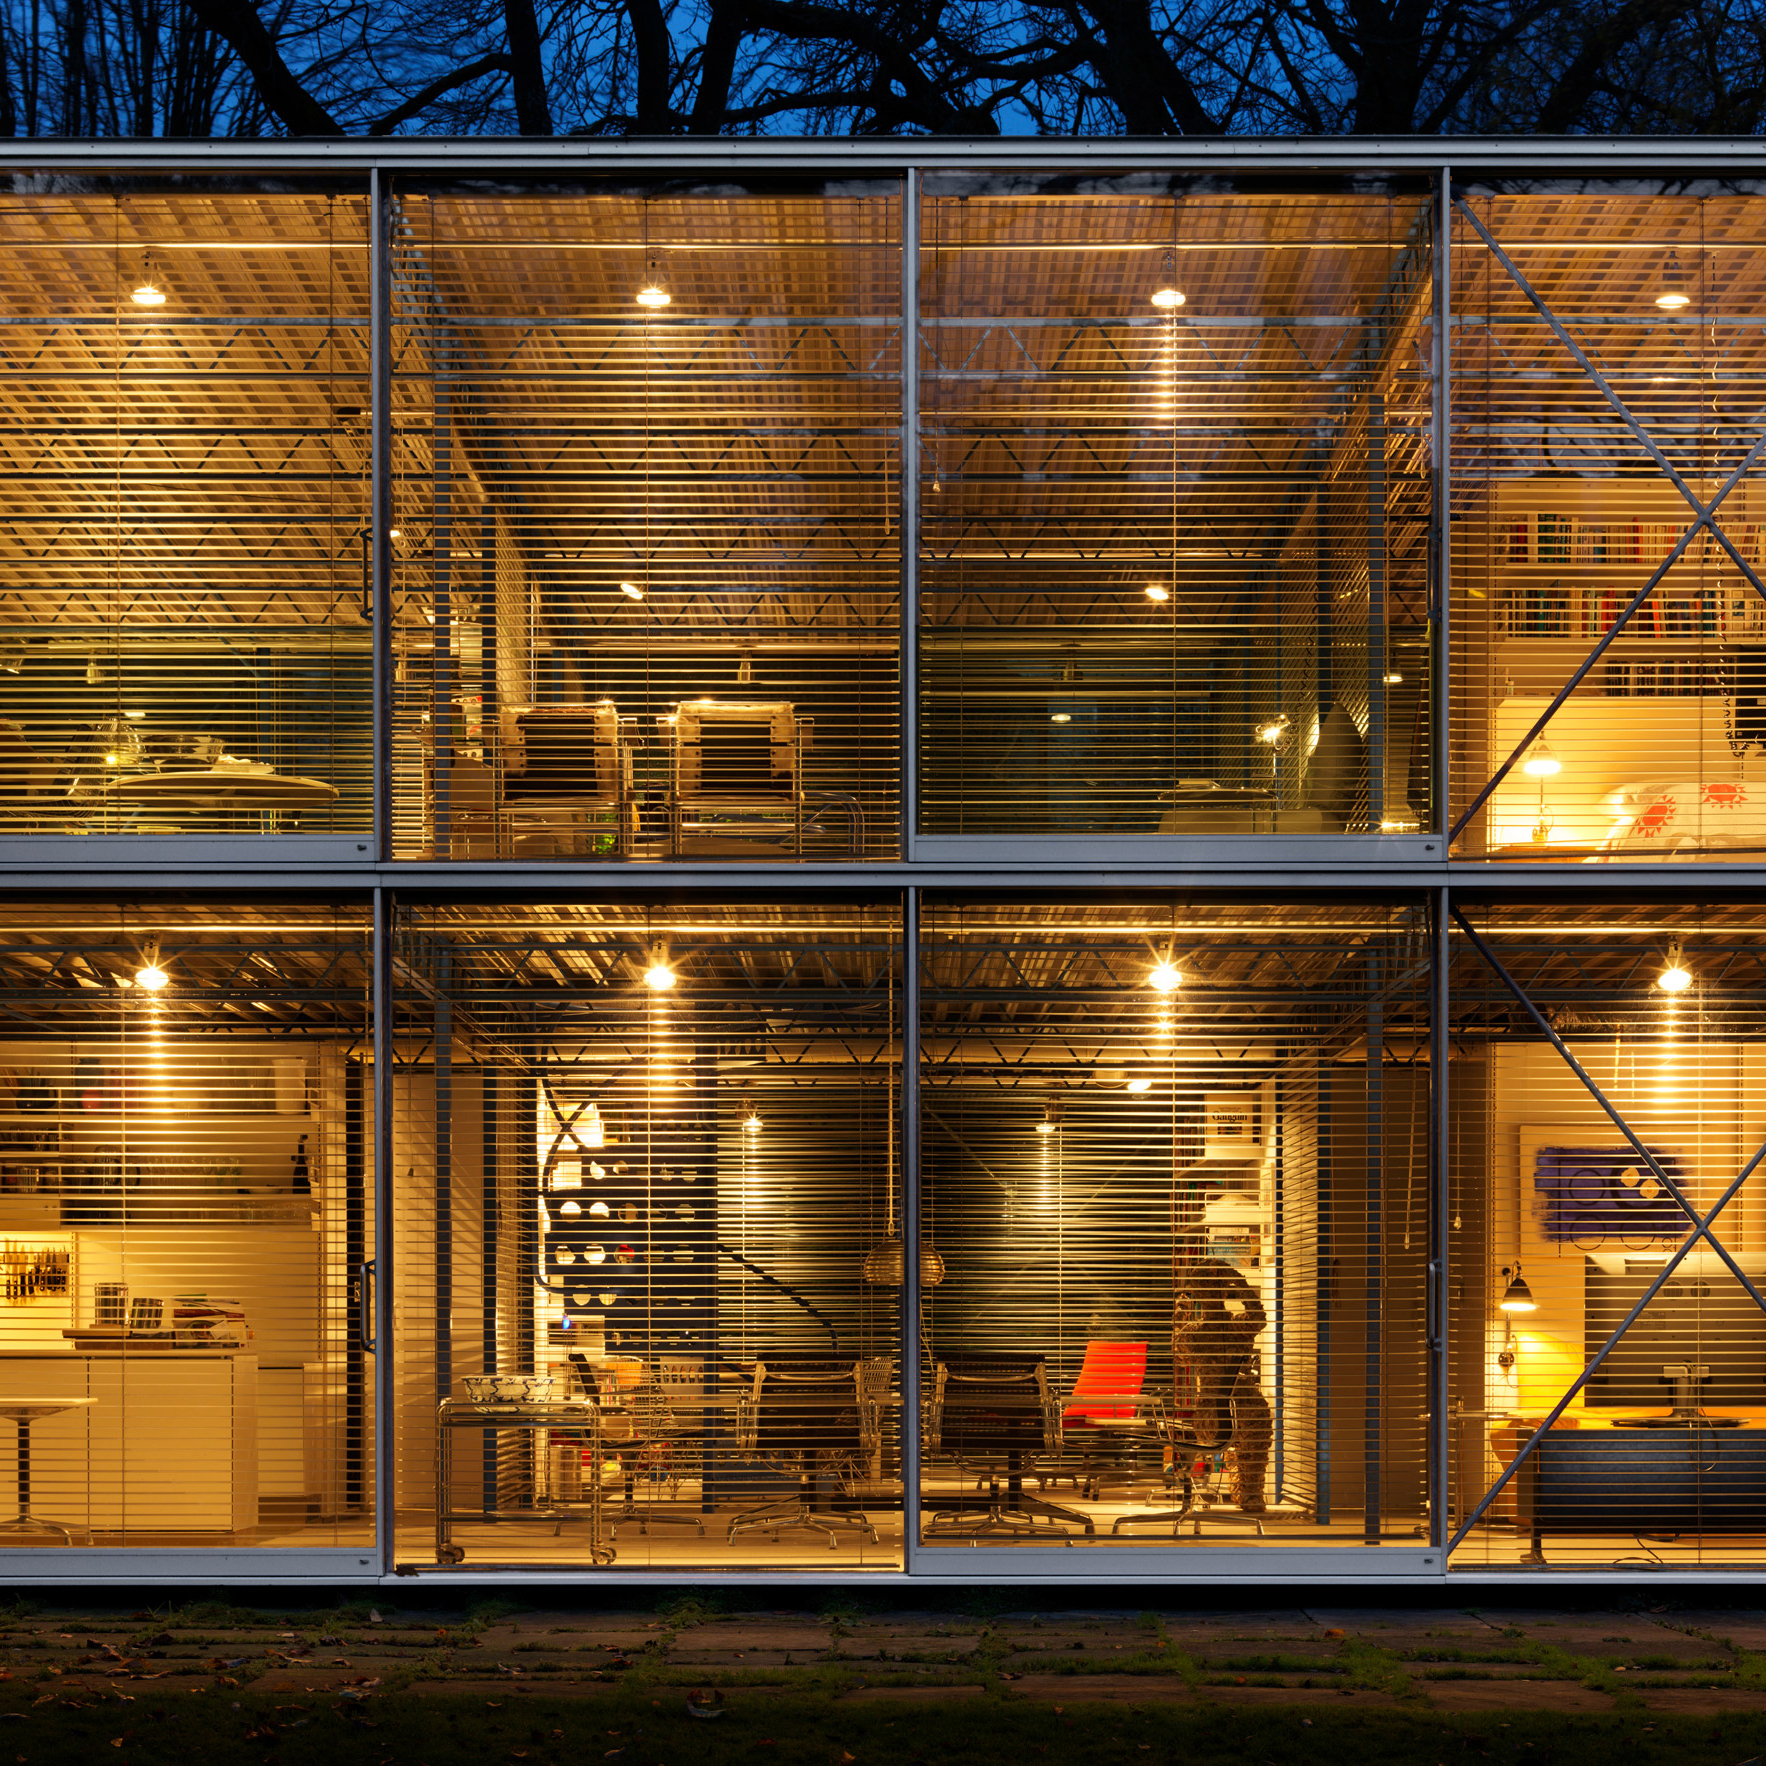 High-tech buildings: Hopkins House by Micheal and Patty Hopkins